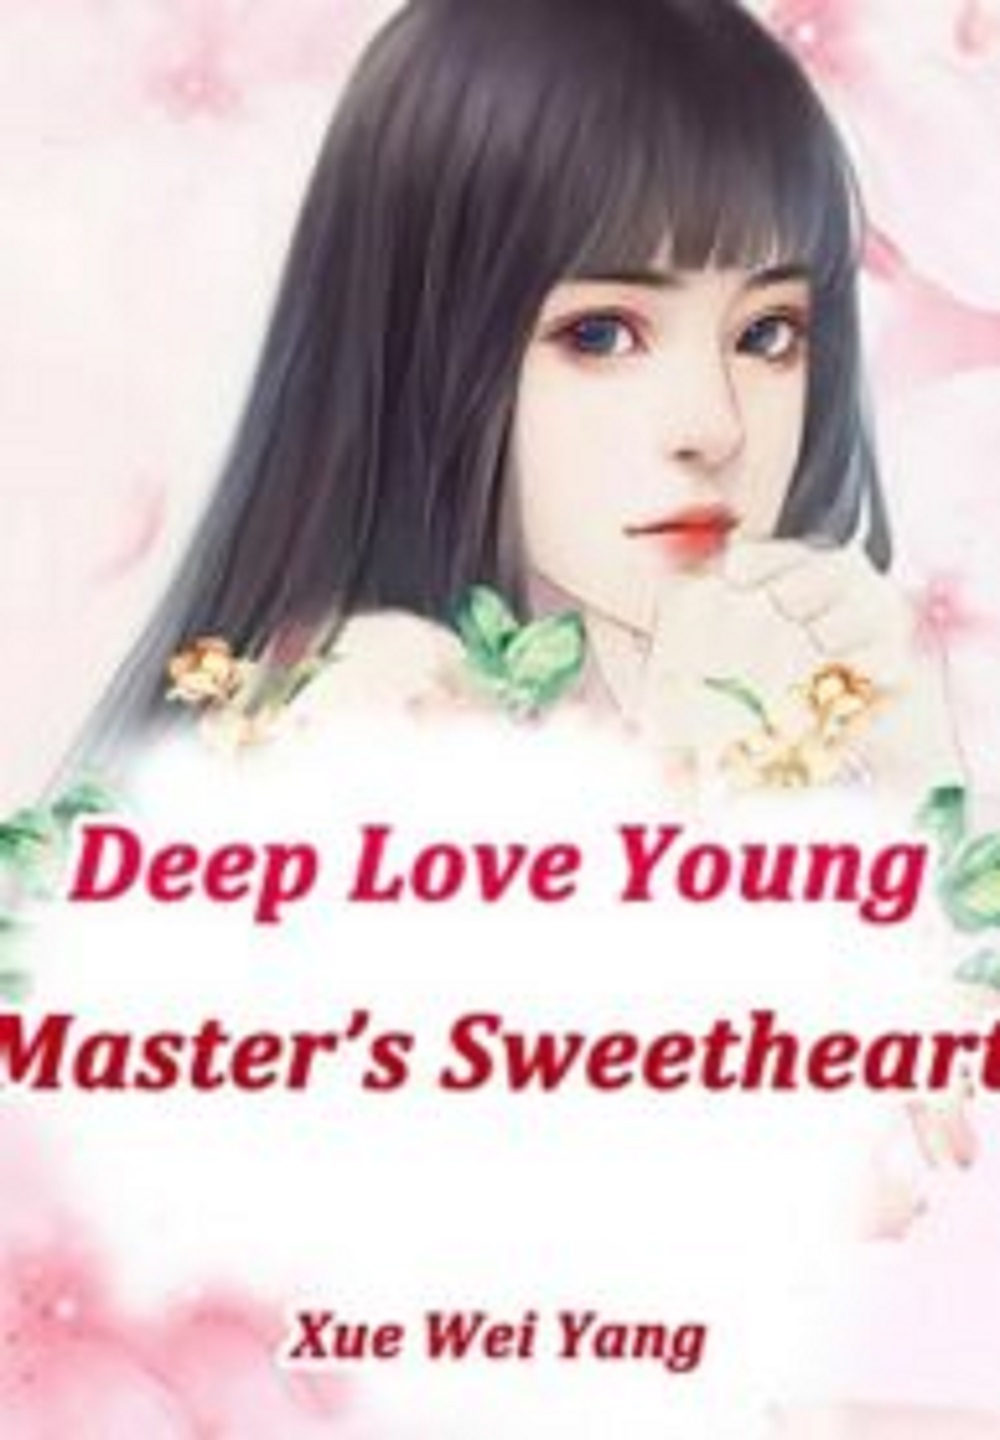 Deep Love: Young Master's Sweetheart Novel Chapter 11 To 12 PDF